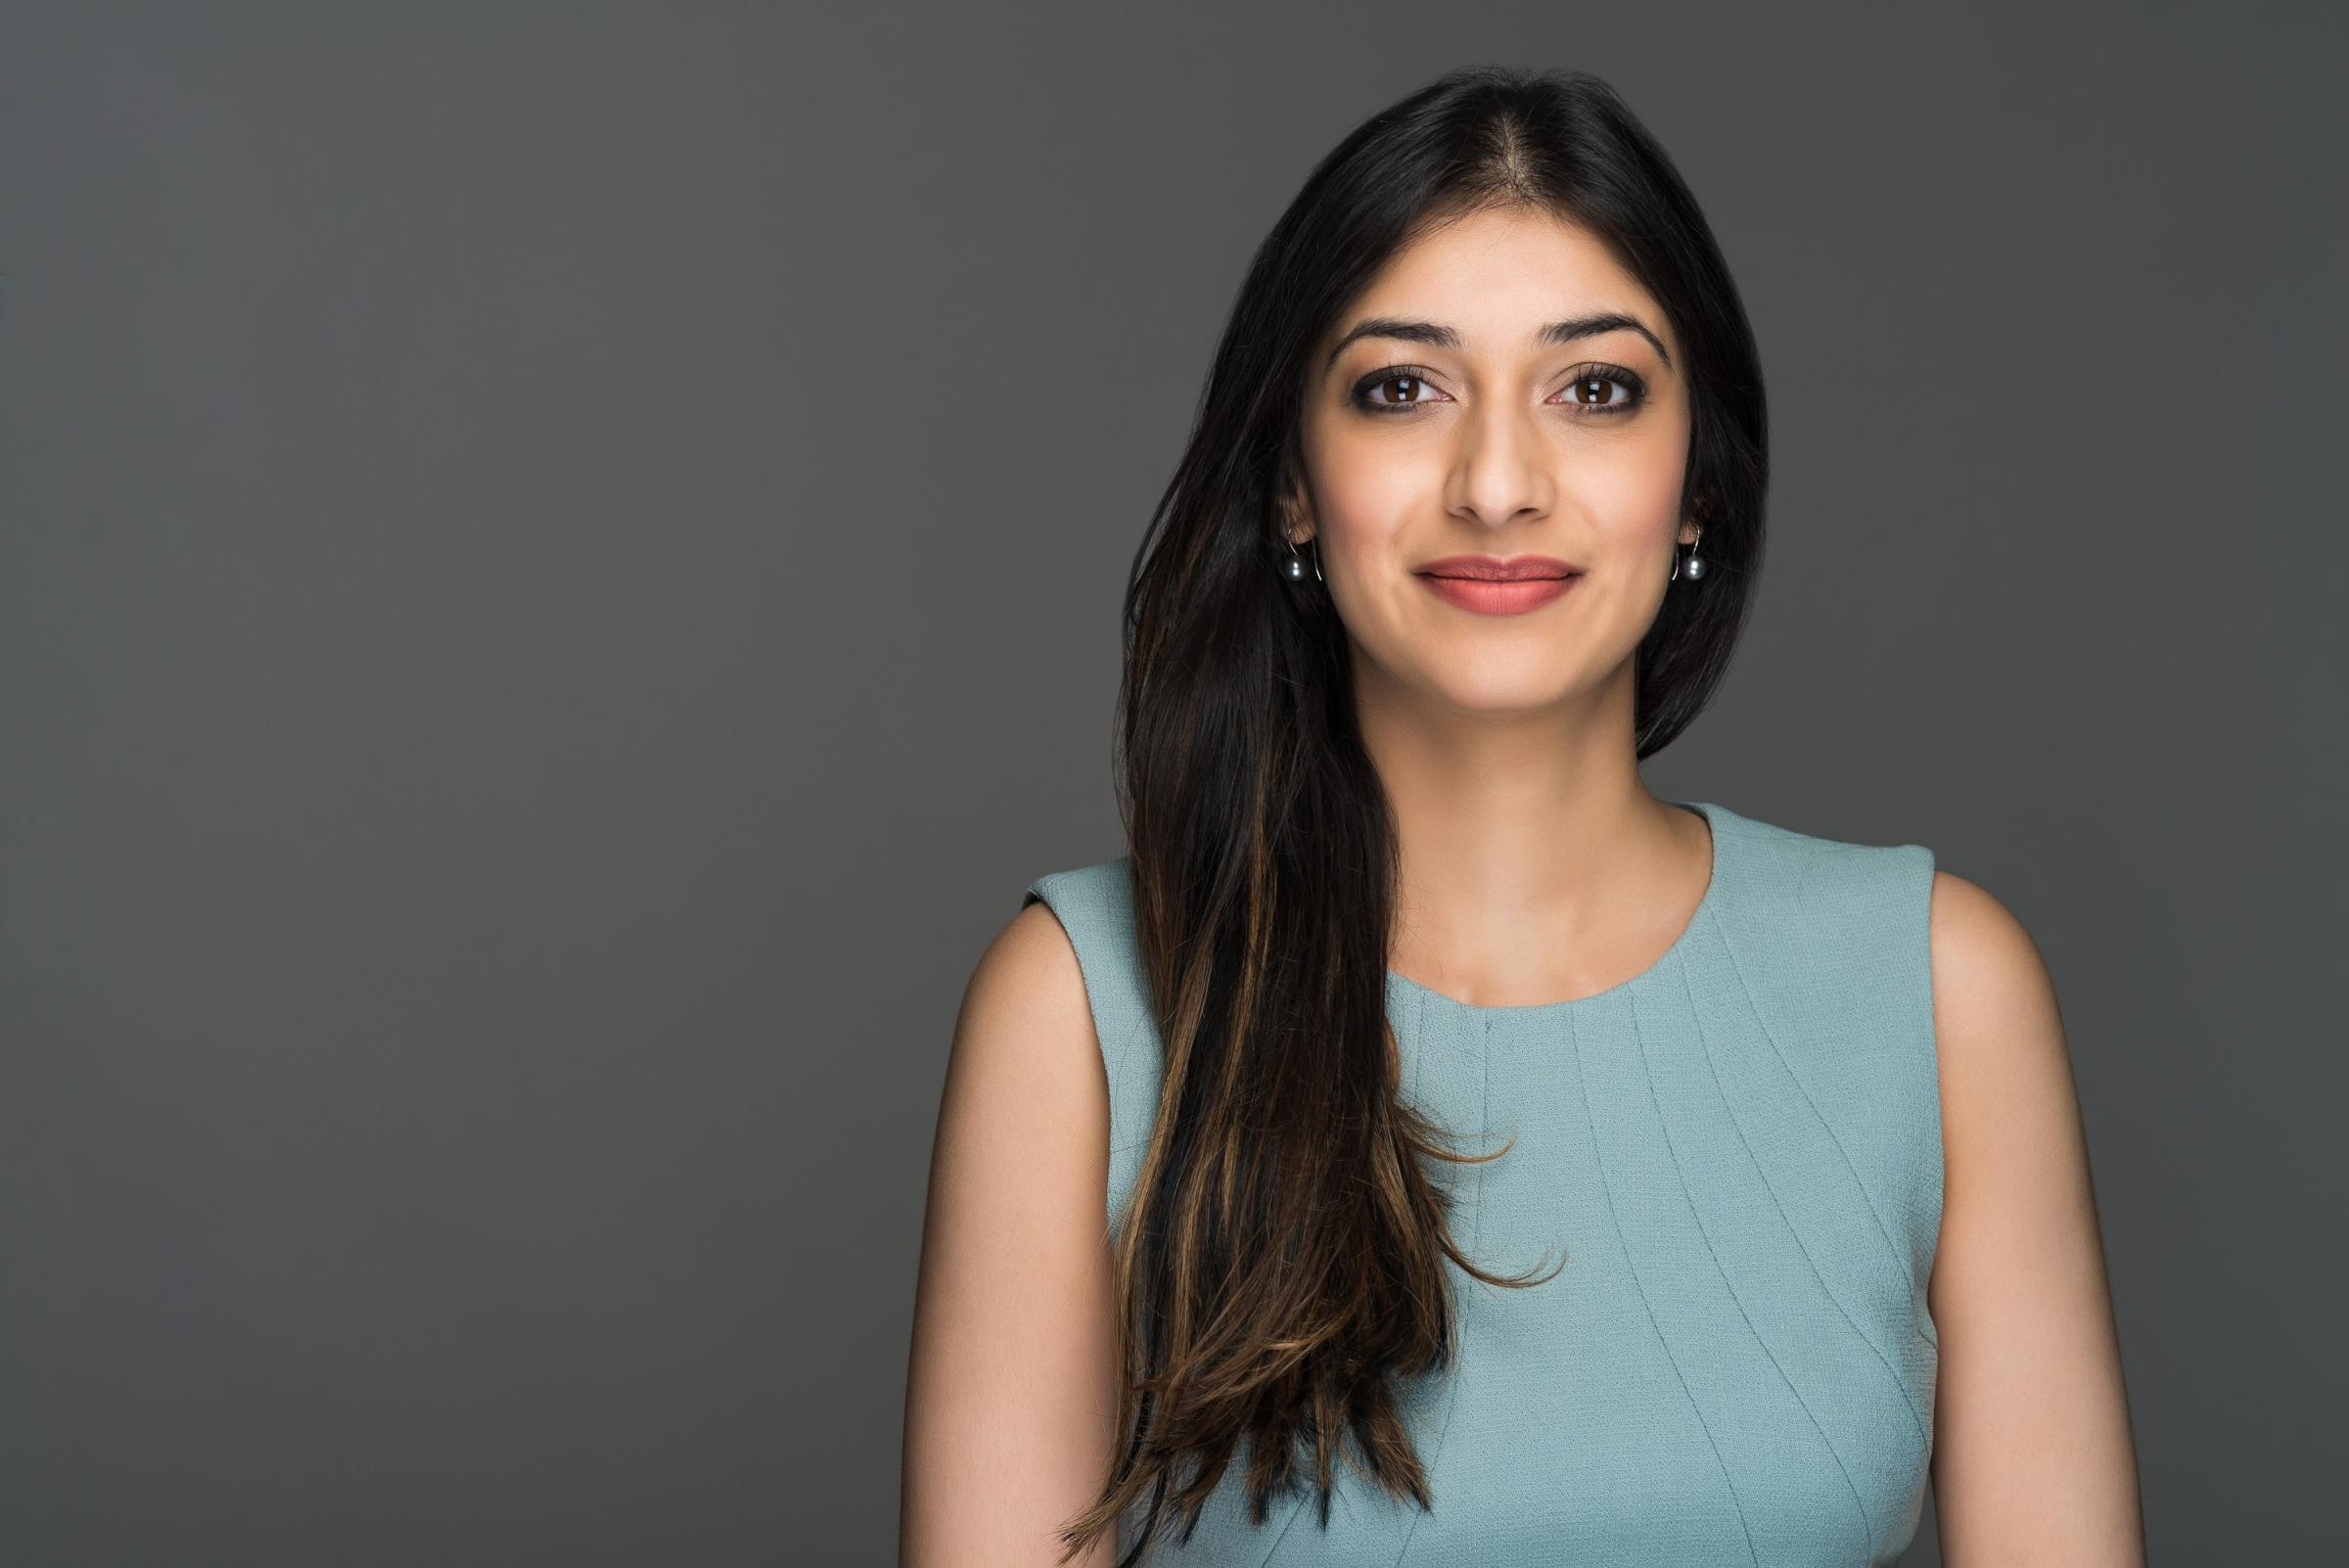 Neesha Sonii : Are you a victim of 'gaslighting'? And what